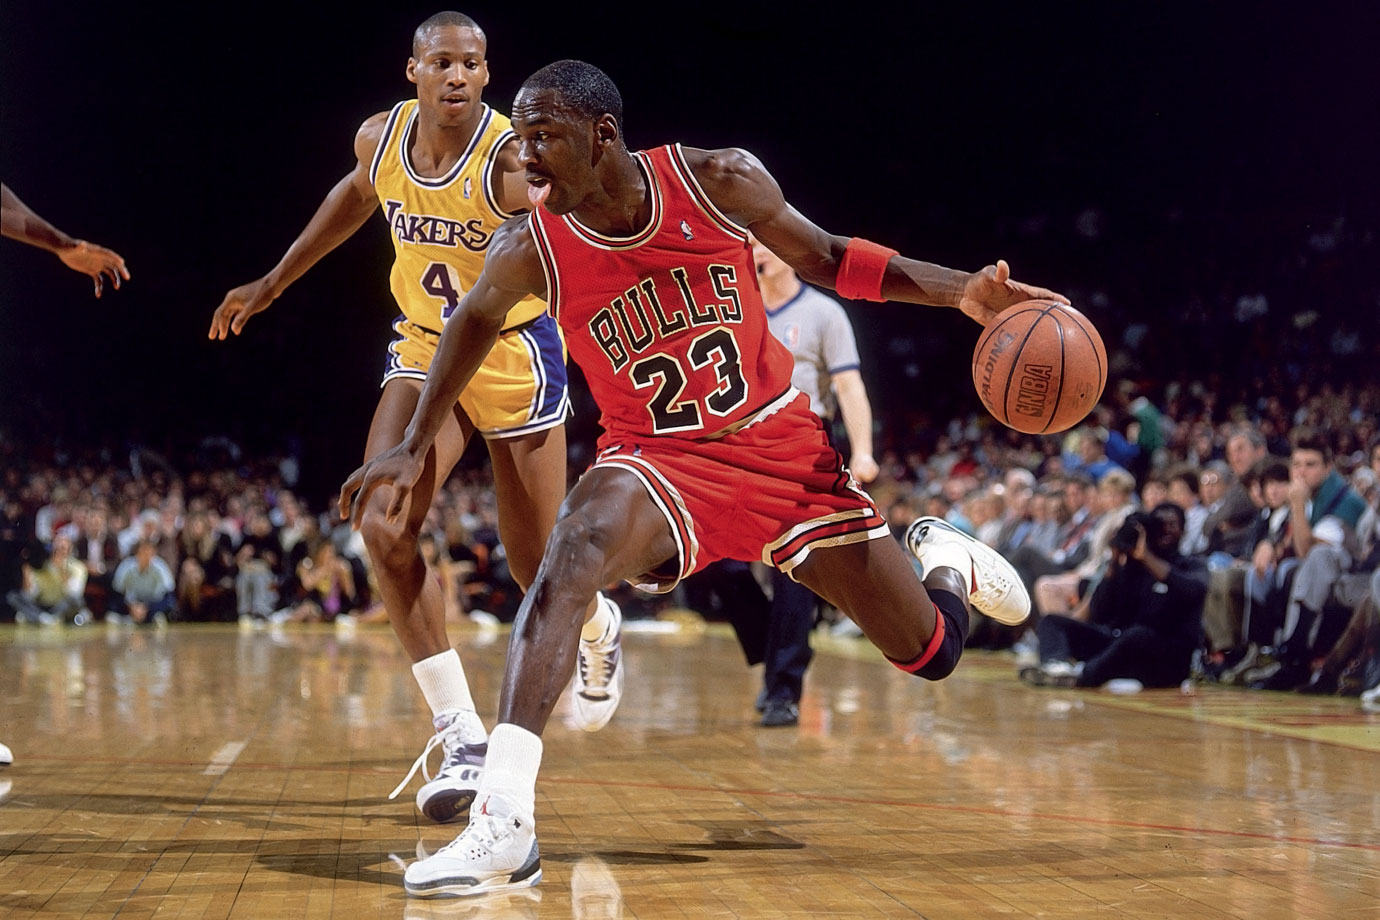 fe7c256275c Michael Jordan fakes on a drive against the Los Angeles Lakers in February  1988. Jordan